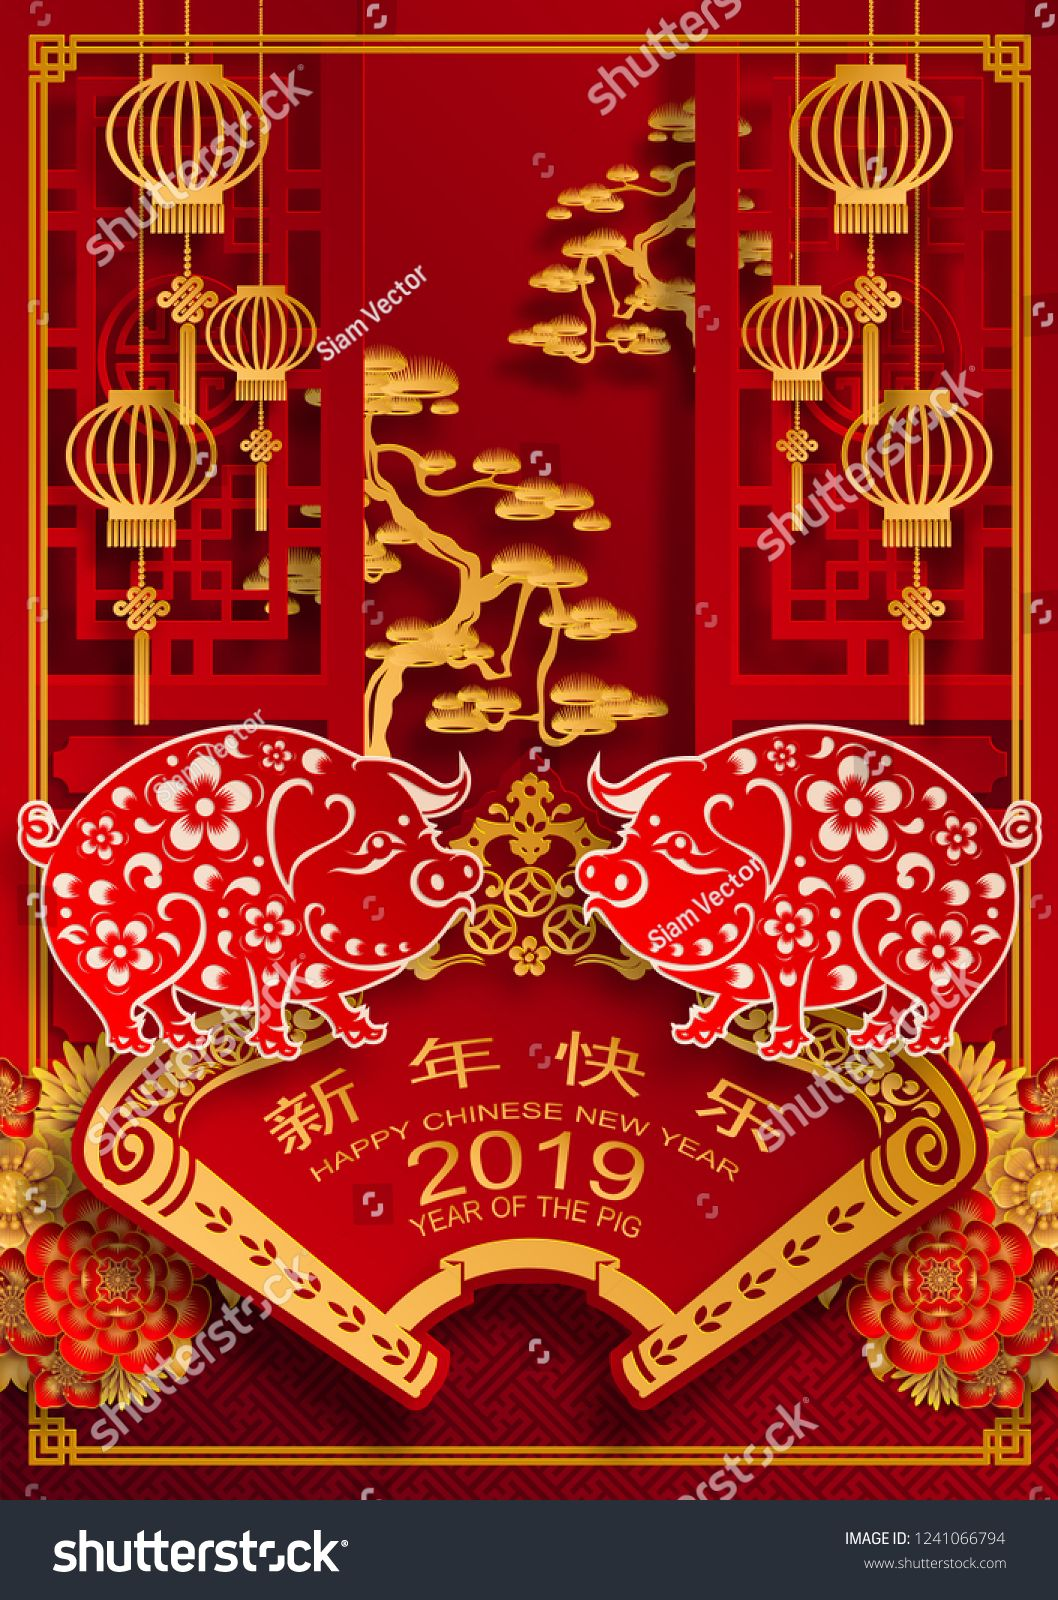 Pin On Lunar New Year